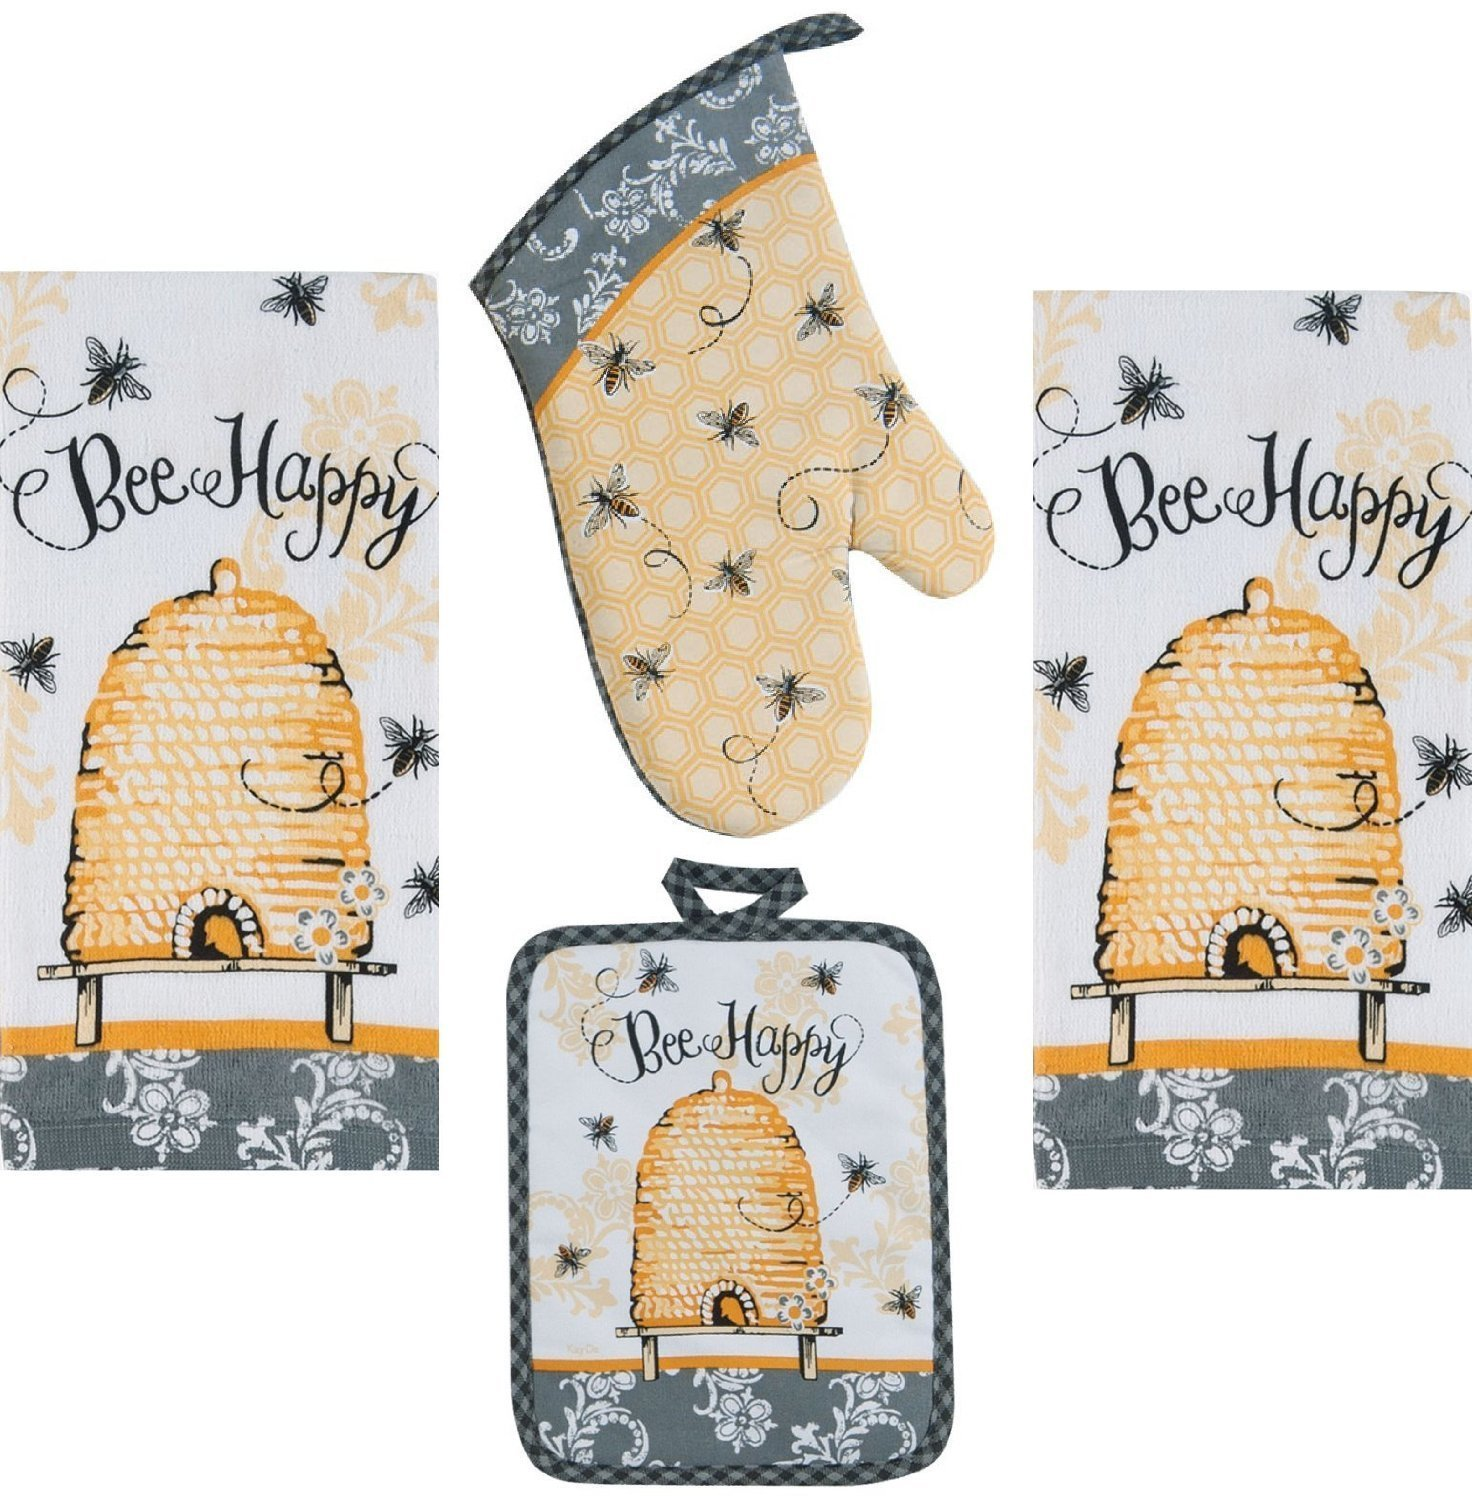 4 Piece Bee Happy Kitchen Set - 2 Terry Towels, Oven Mitt, Potholder